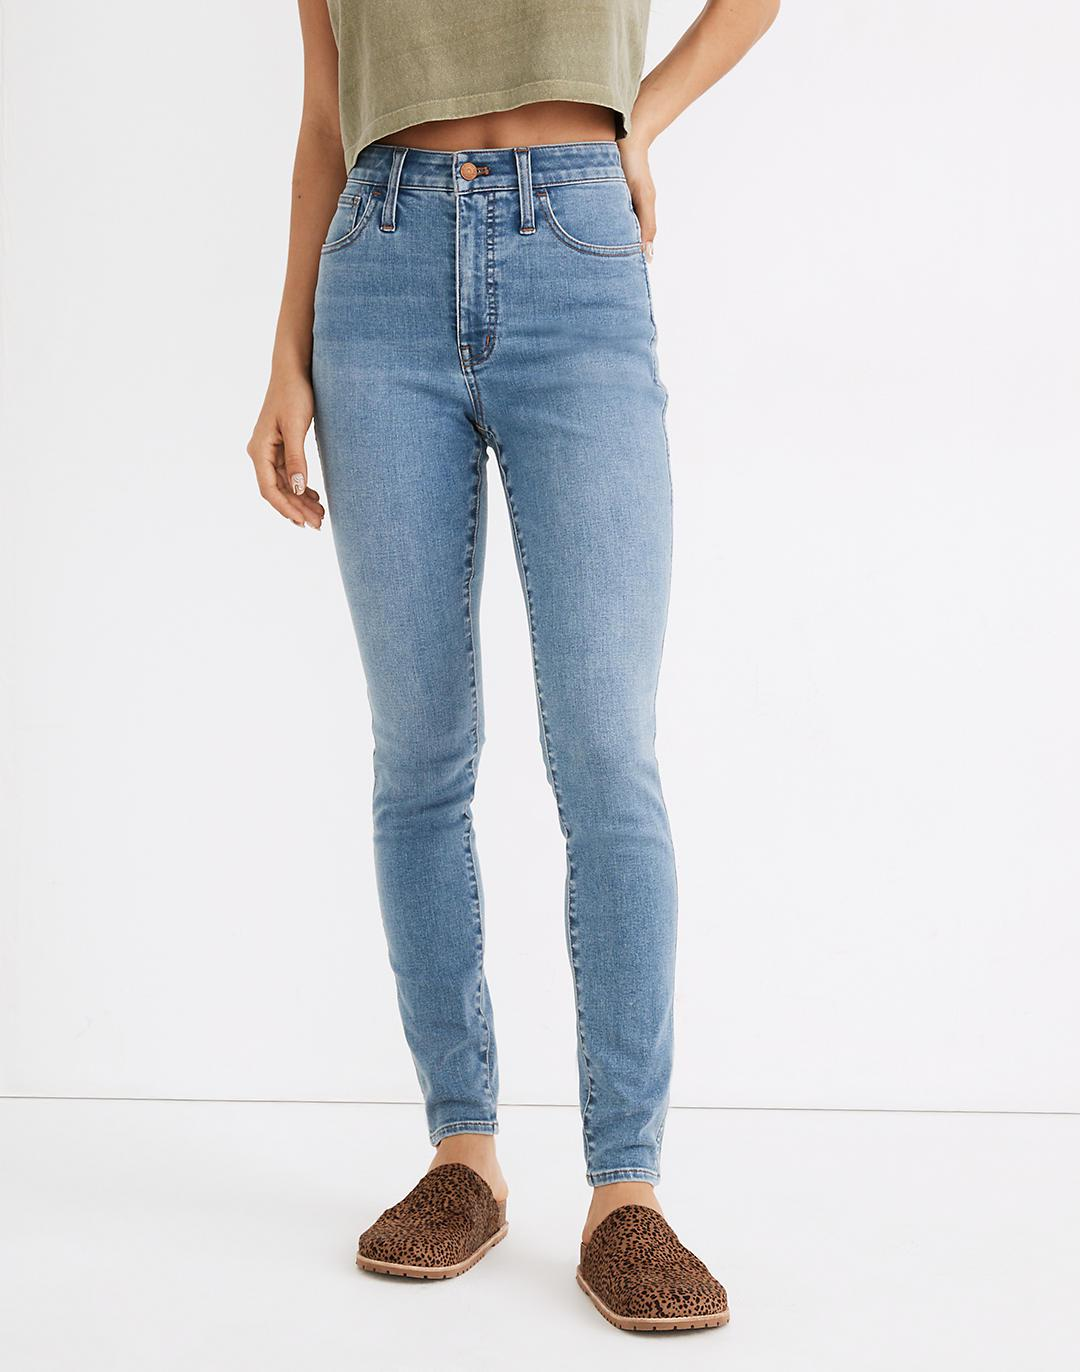 Tall Curvy Roadtripper Authentic Skinny Jeans in Conroe Wash